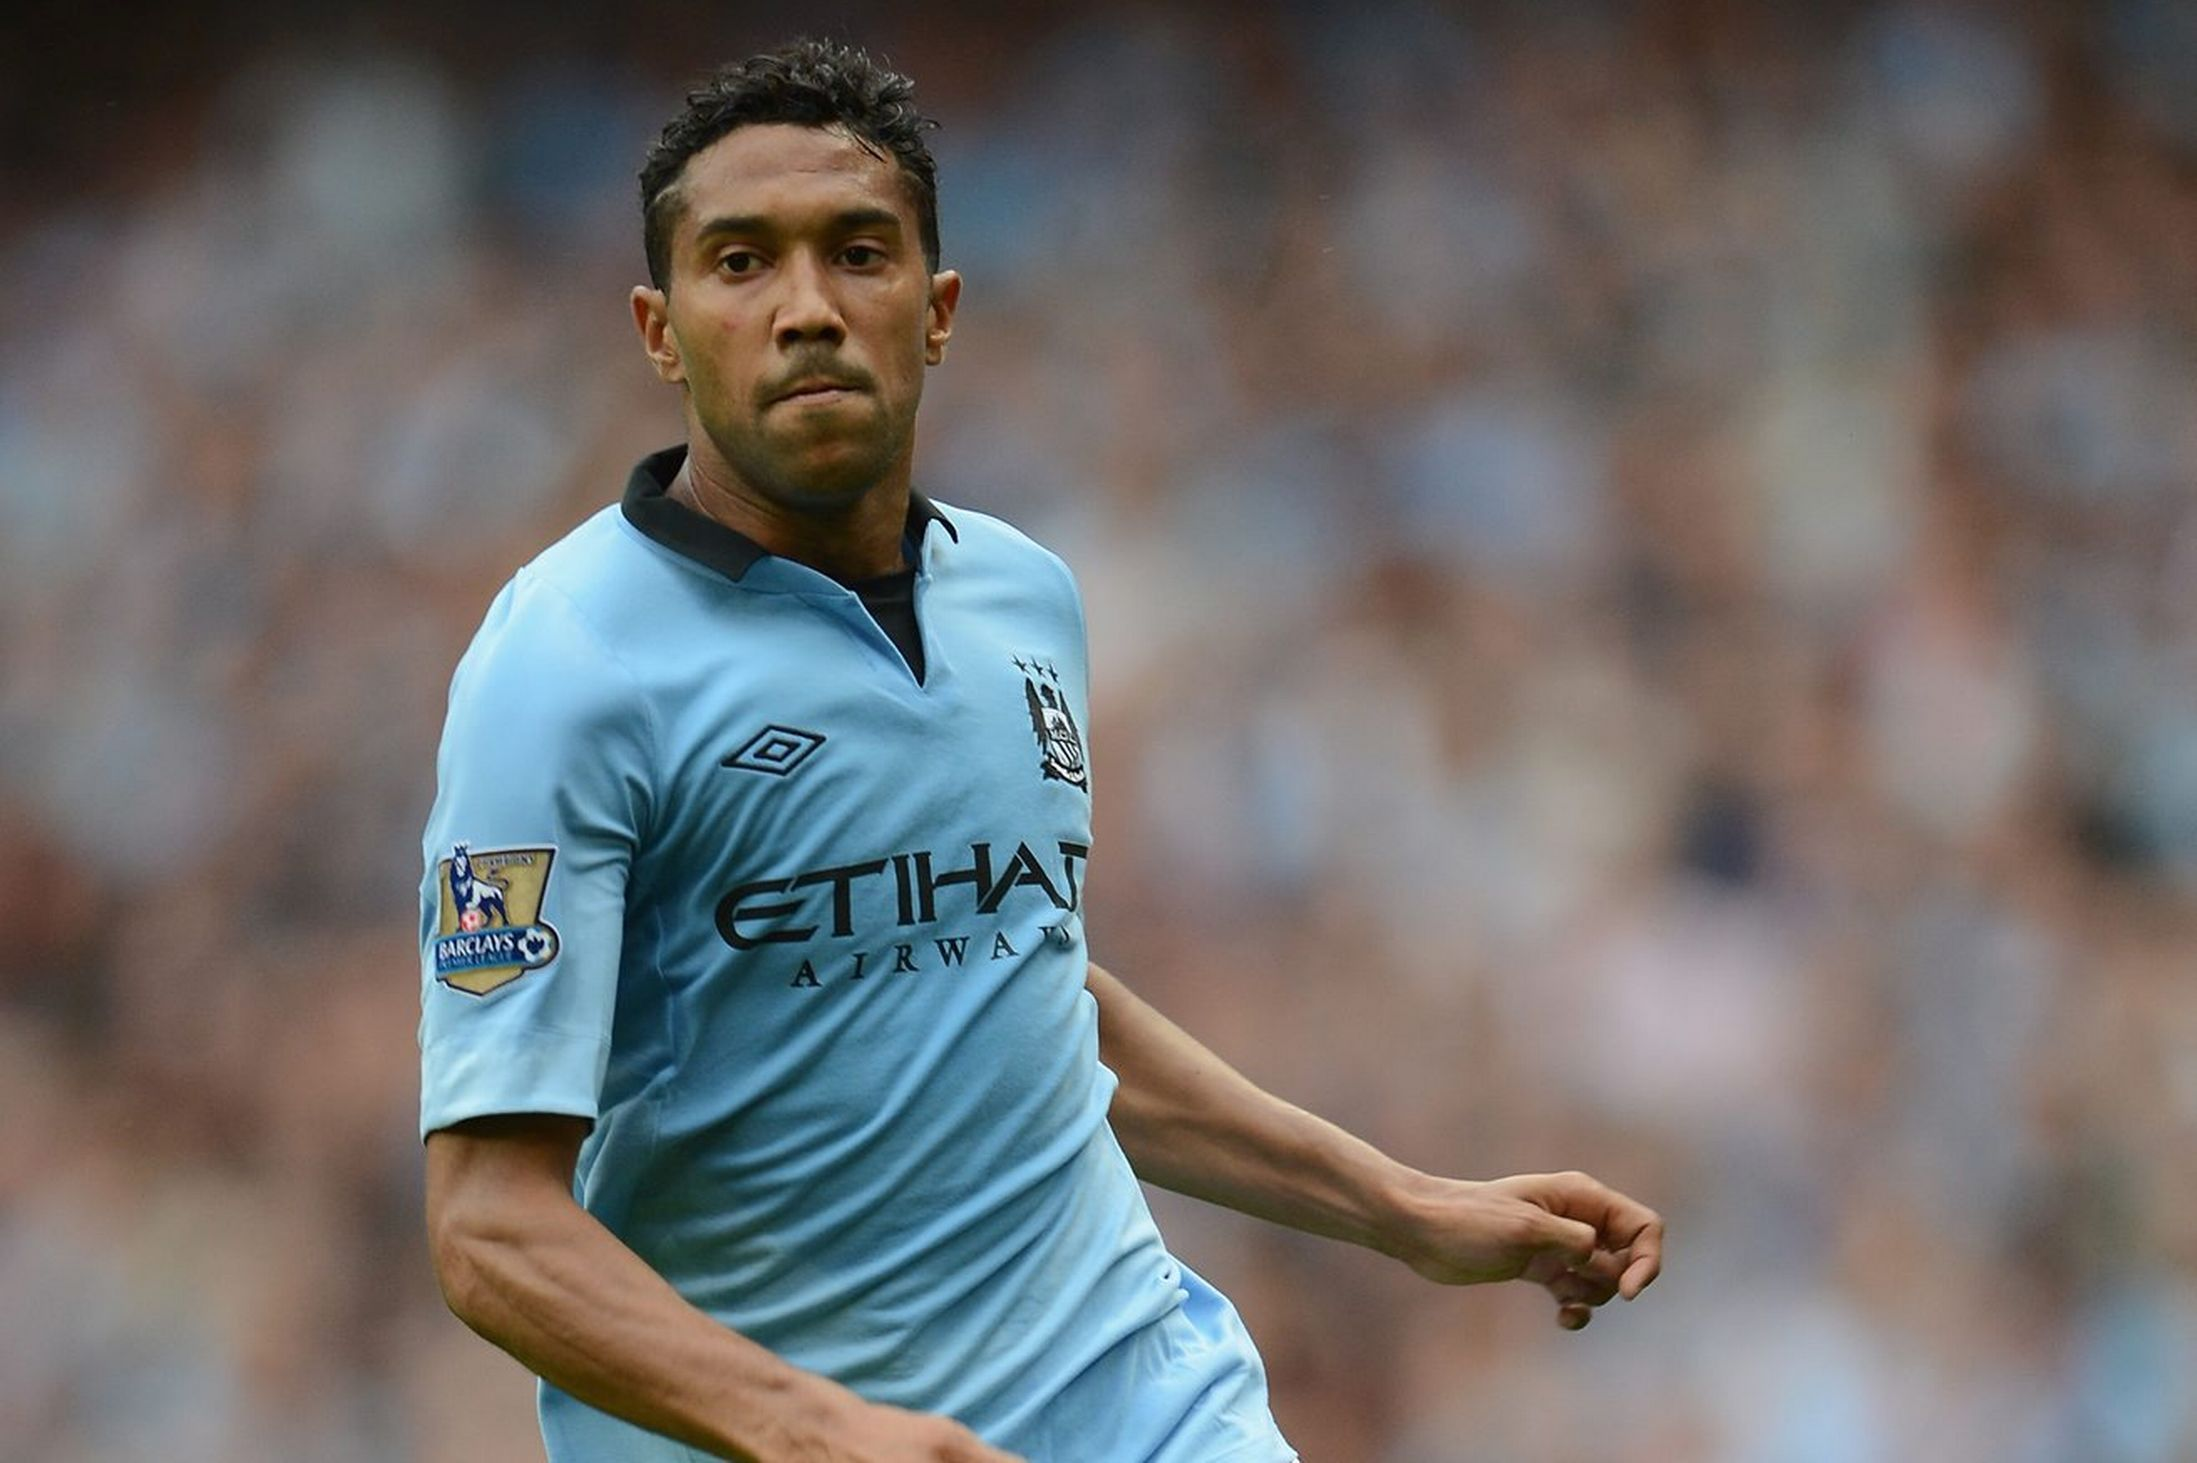 http://static2.therichestimages.com/cdn/1728/1150/90/cw/wp-content/uploads/2014/08/Gael-Clichy.jpg